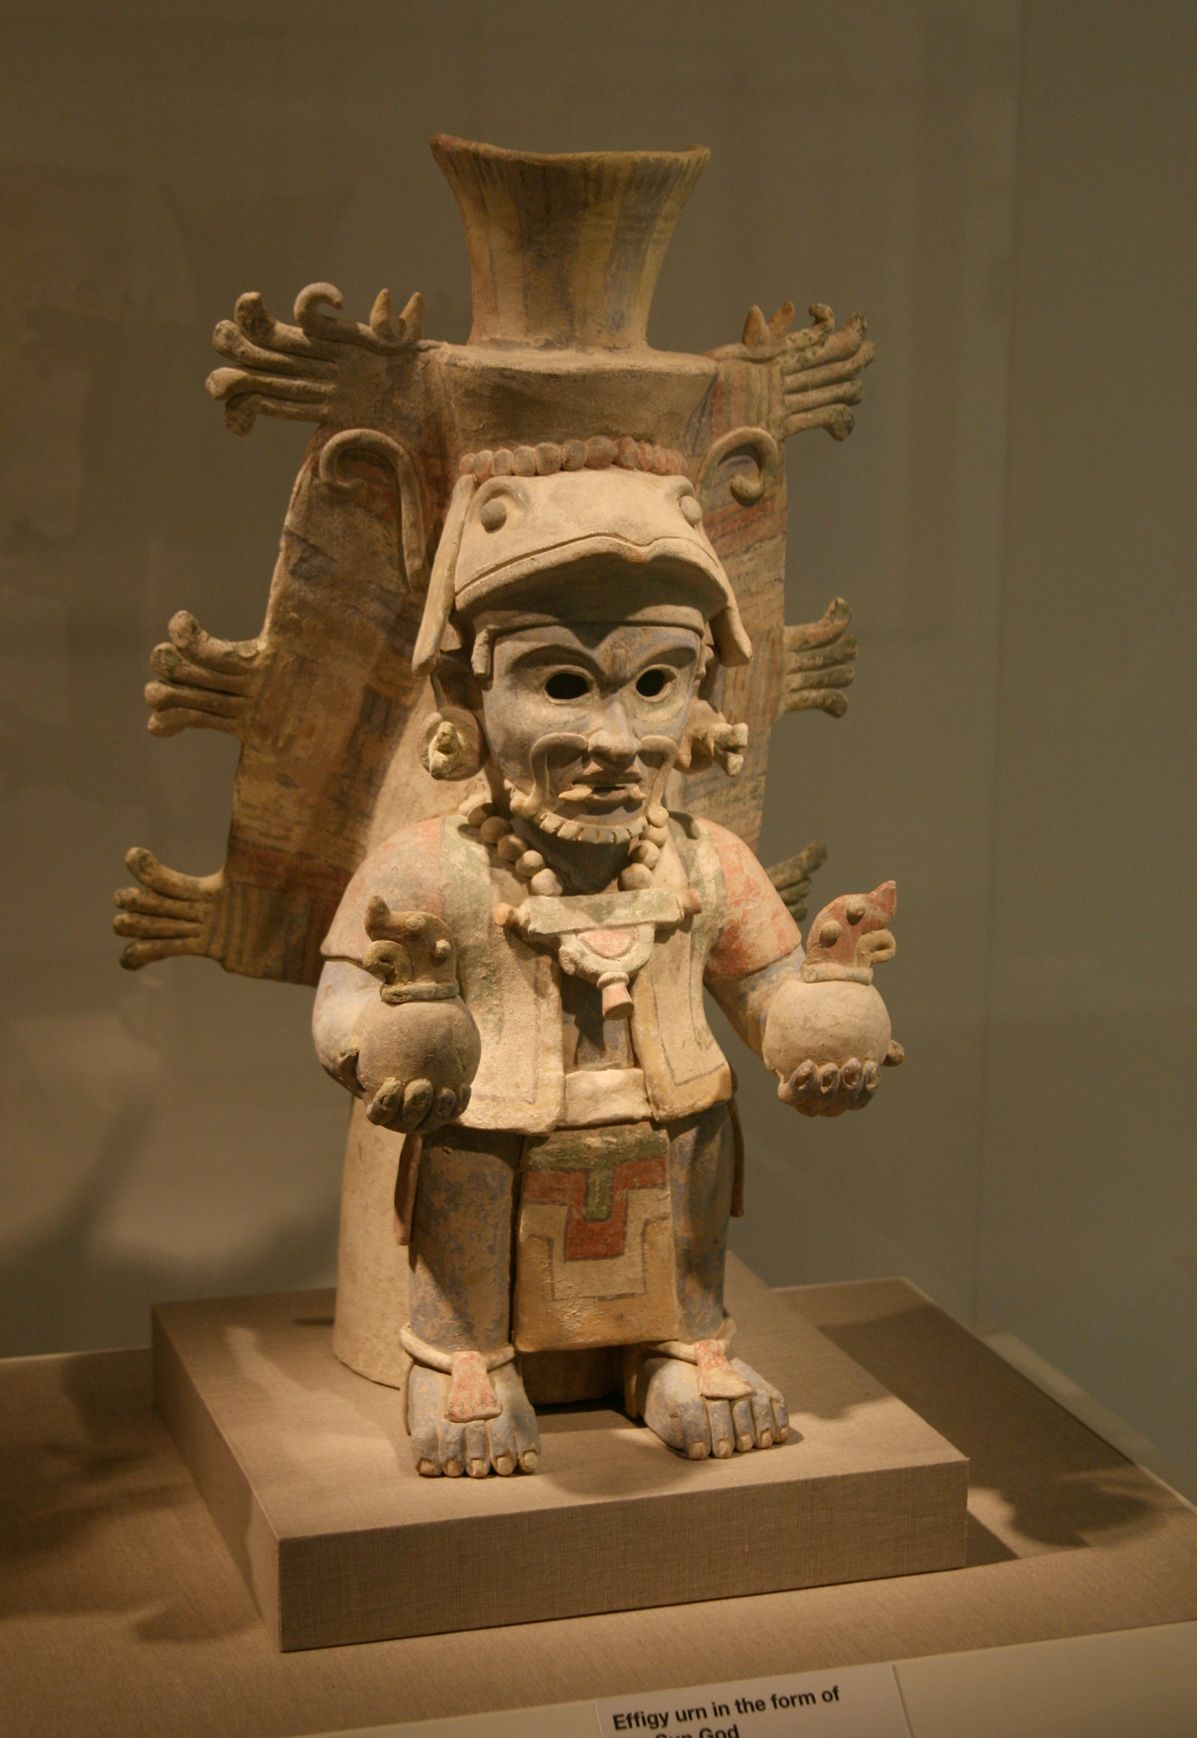 Ancient Mayan Effigy urn in the - 177.3KB